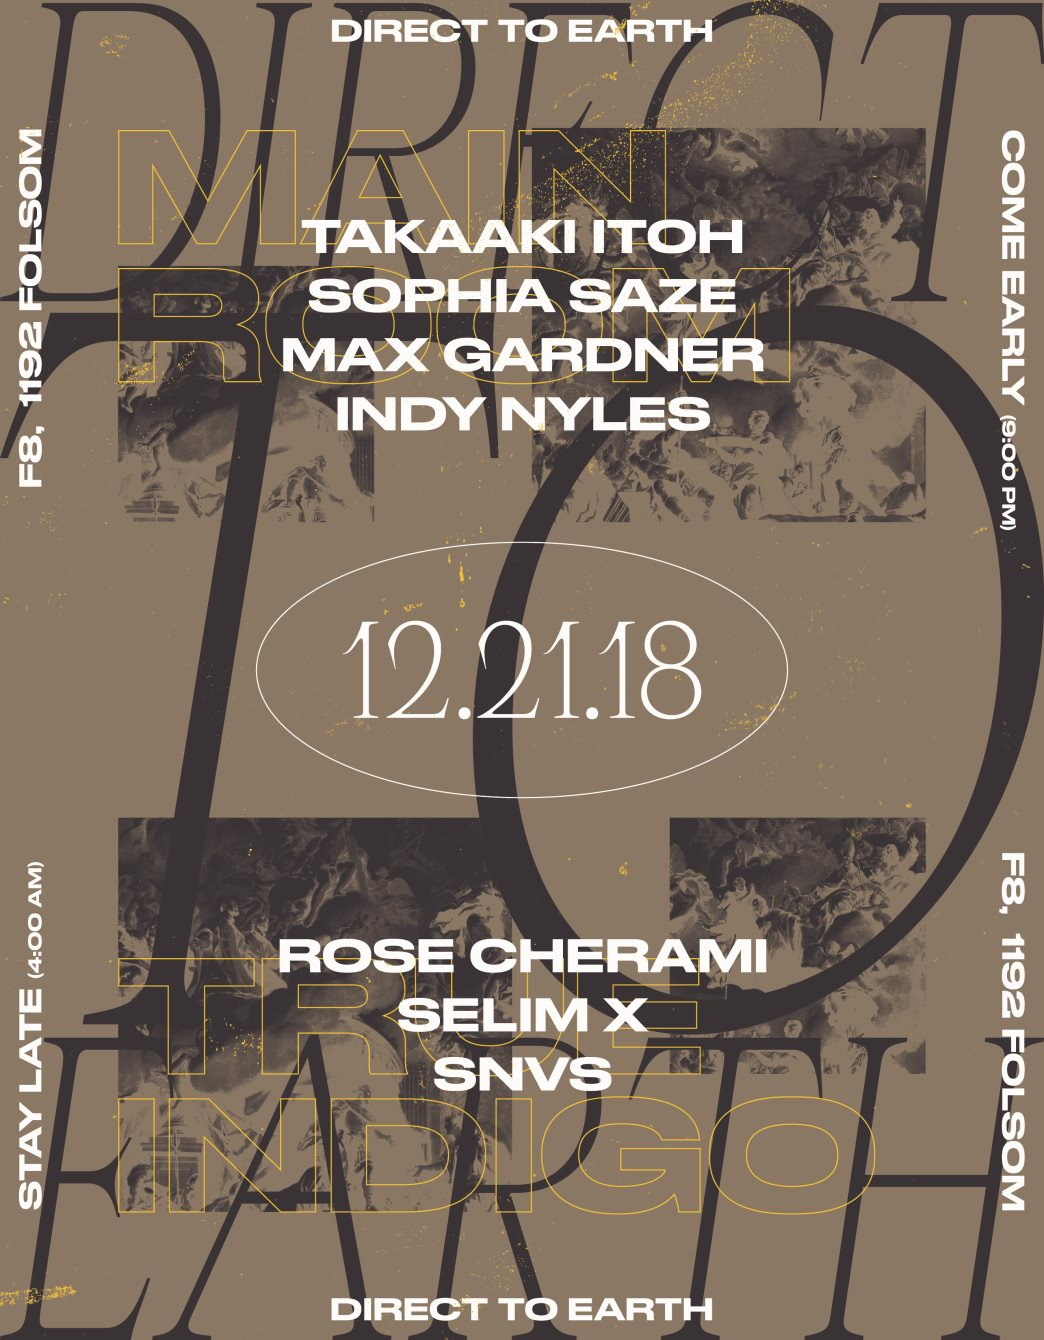 Direct to Earth with Takaaki Itoh, Sophia Saze, True Indigo, Max Gardner & Indy Nyles - Flyer front